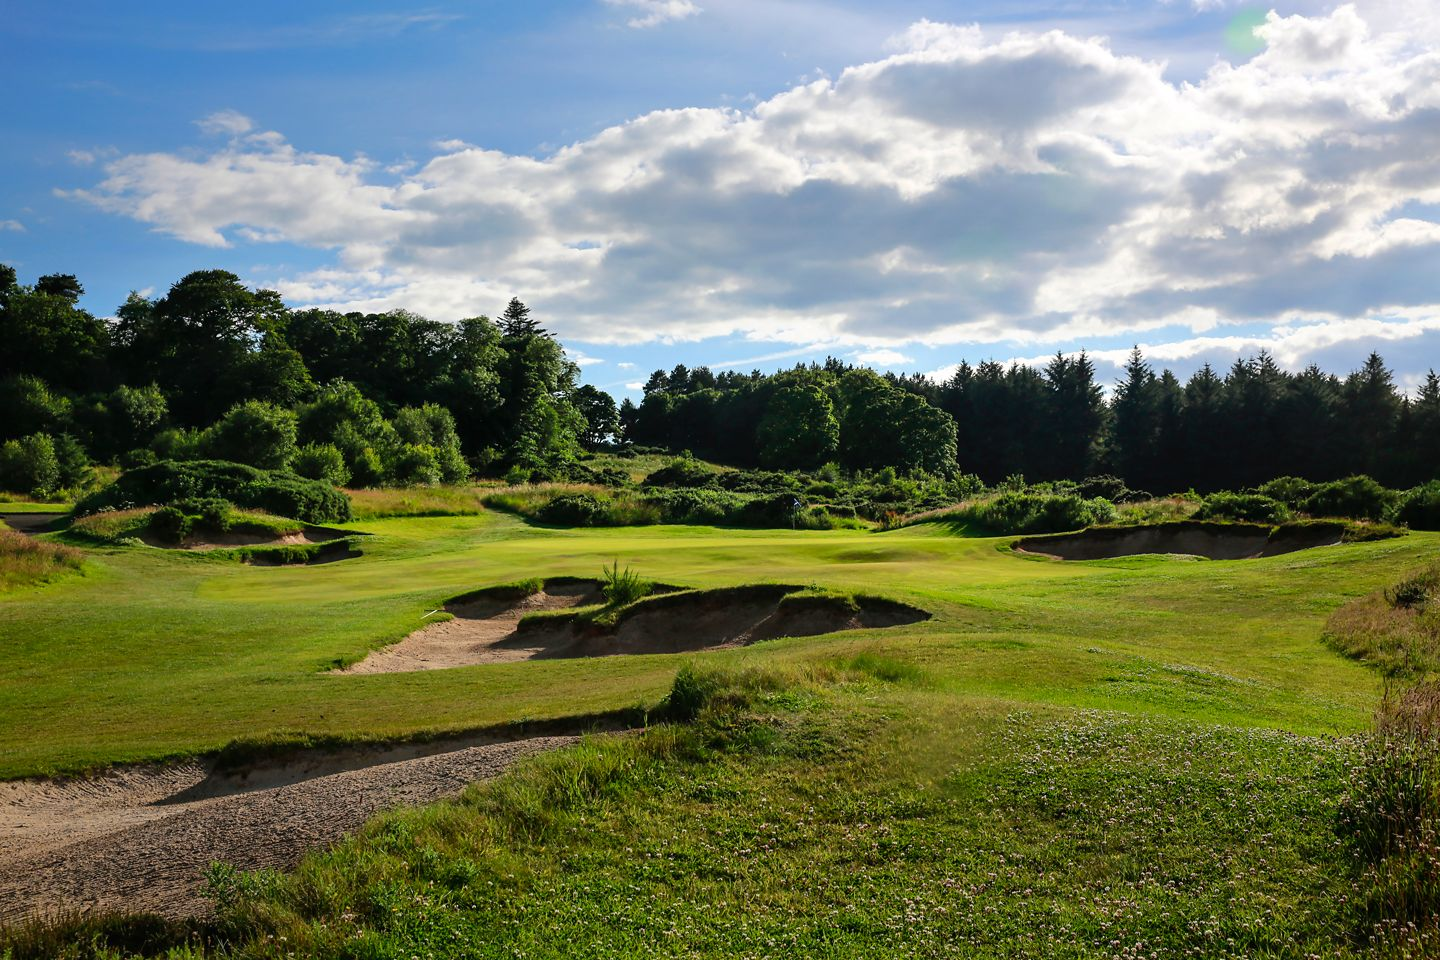 No. 8 Fair Dunt. View uphill over bunkers towards the 8th green at The Duke's golf course.